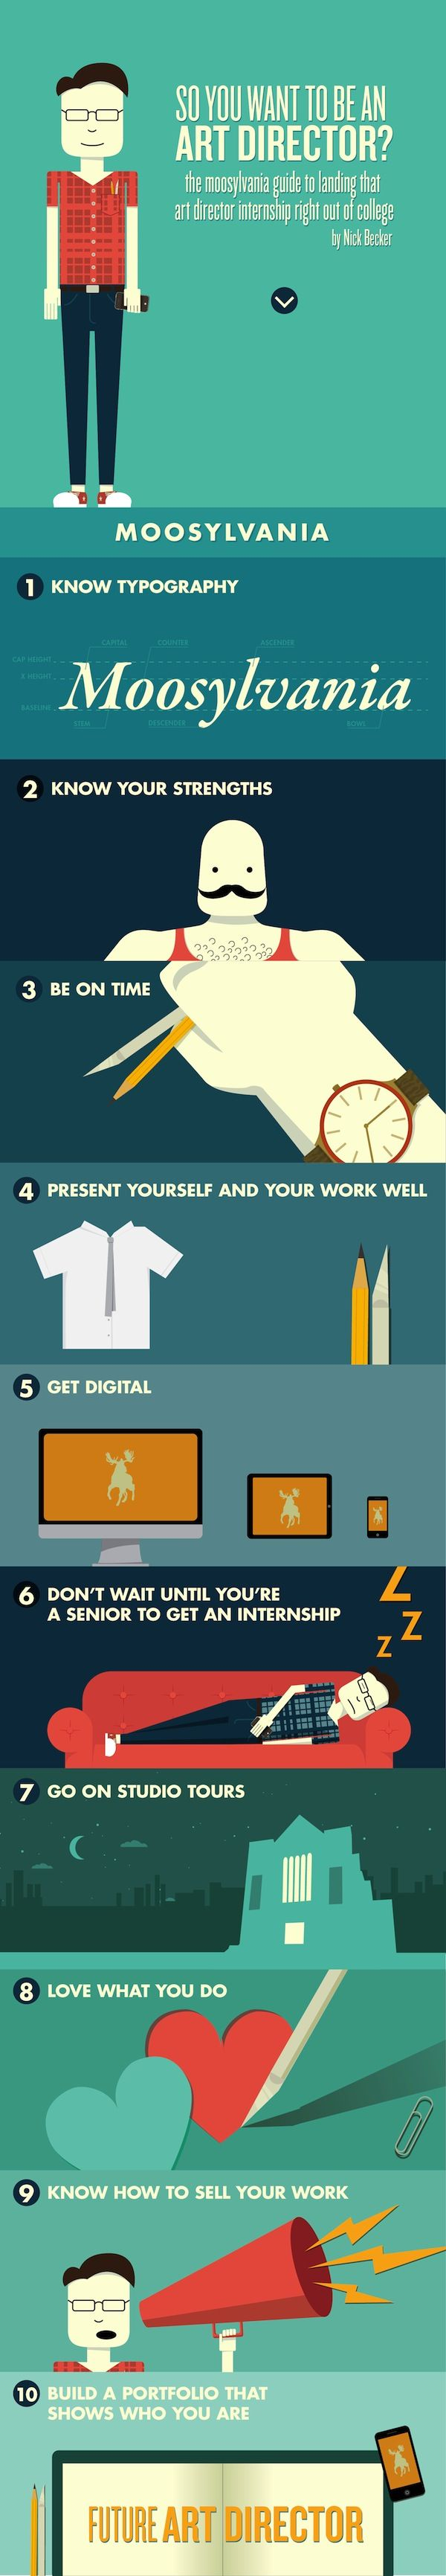 So you want to be an art director? Great infographic by @Nick Becker with tips for landing an internship.